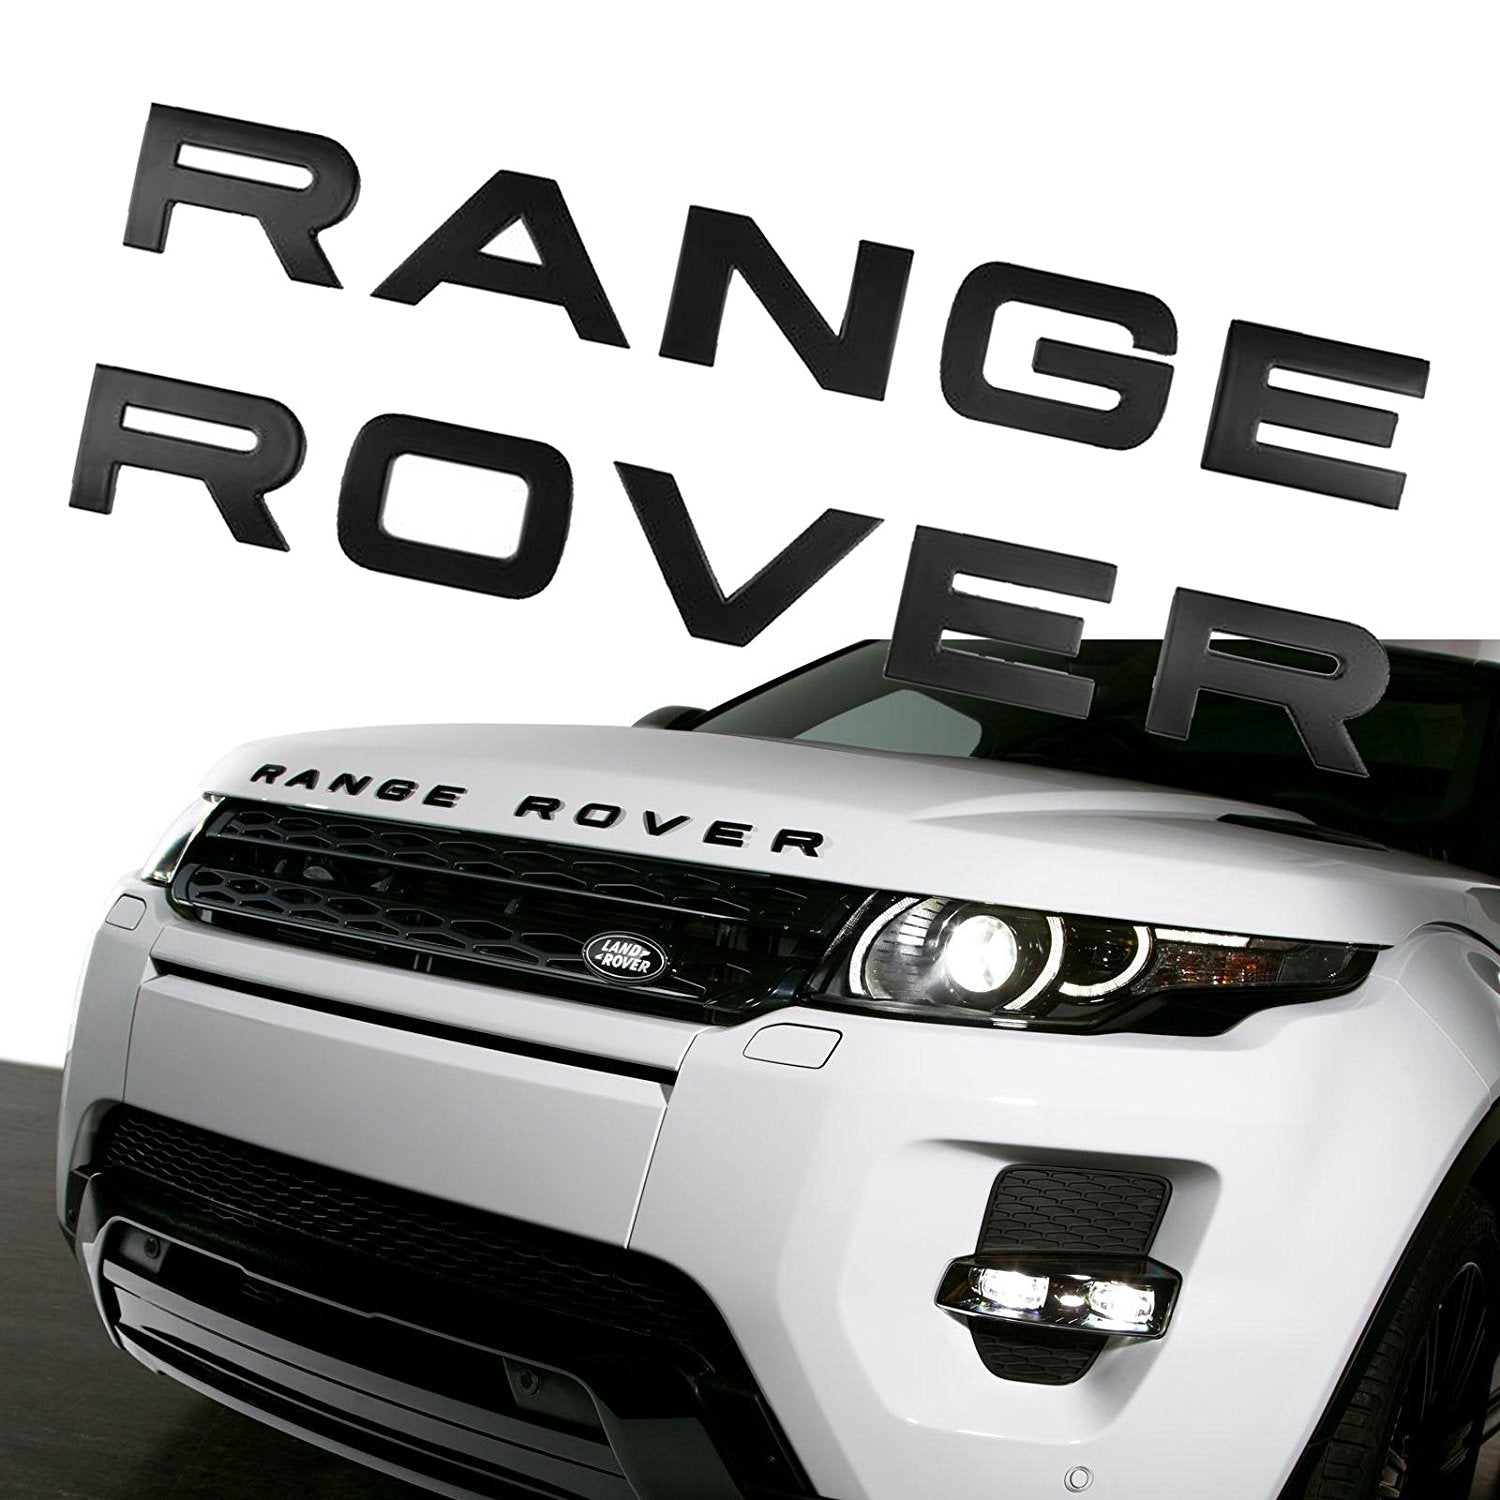 Matte Silver RANGE ROVER Trunk Badge Emblem Decal Letters Sticker for LAND ROVER